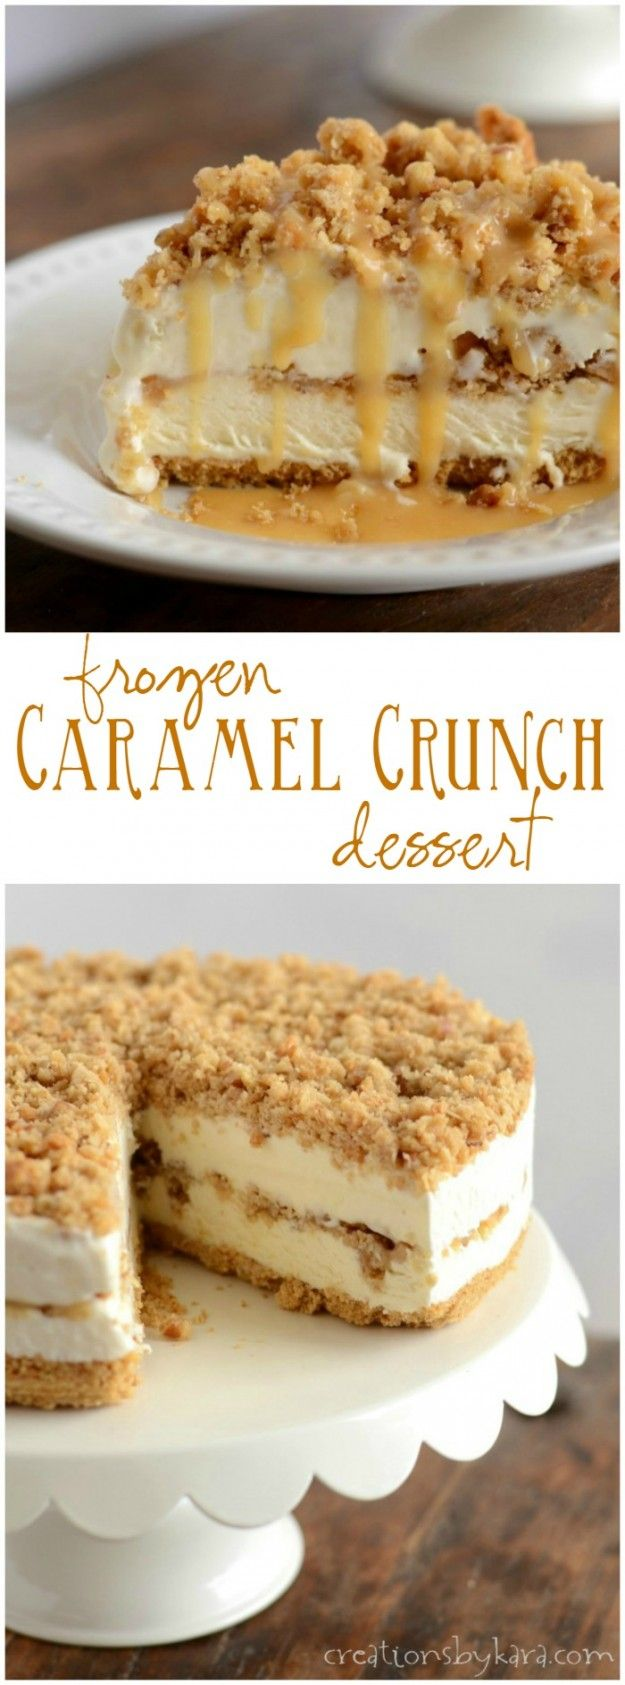 20 Delicious Frozen Dessert Recipes | The Crafting Nook by Titicrafty